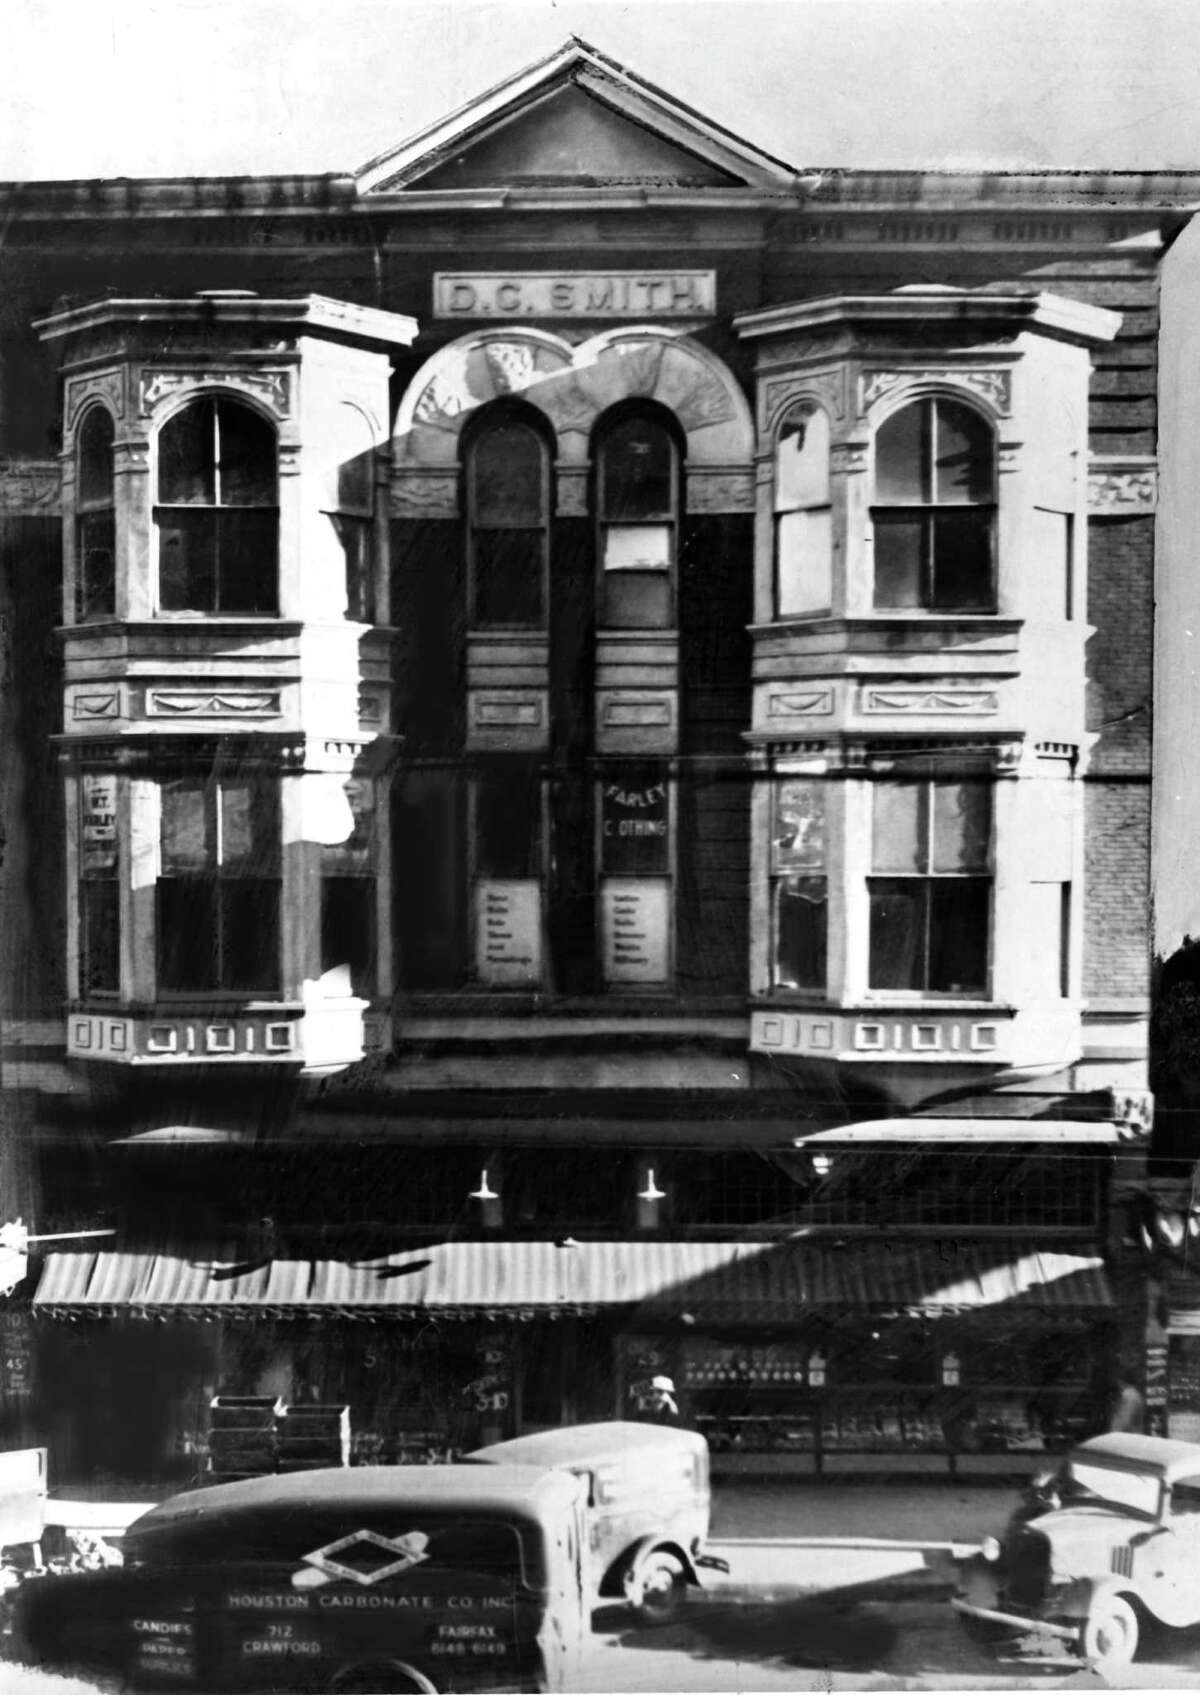 The Chronicle was first published Oct. 14, 1901, in the three-story D.C. Smith Building, at 1009 Texas Ave., between Main and Fannin. The rent was a steep $250 a month, but the paper's founders recovered the cost by subletting two-thirds of the building. After eight years, the growing Chronicle had to move out. In 1936, the building was destroyed by fire. The Binz Building later occupied the site.